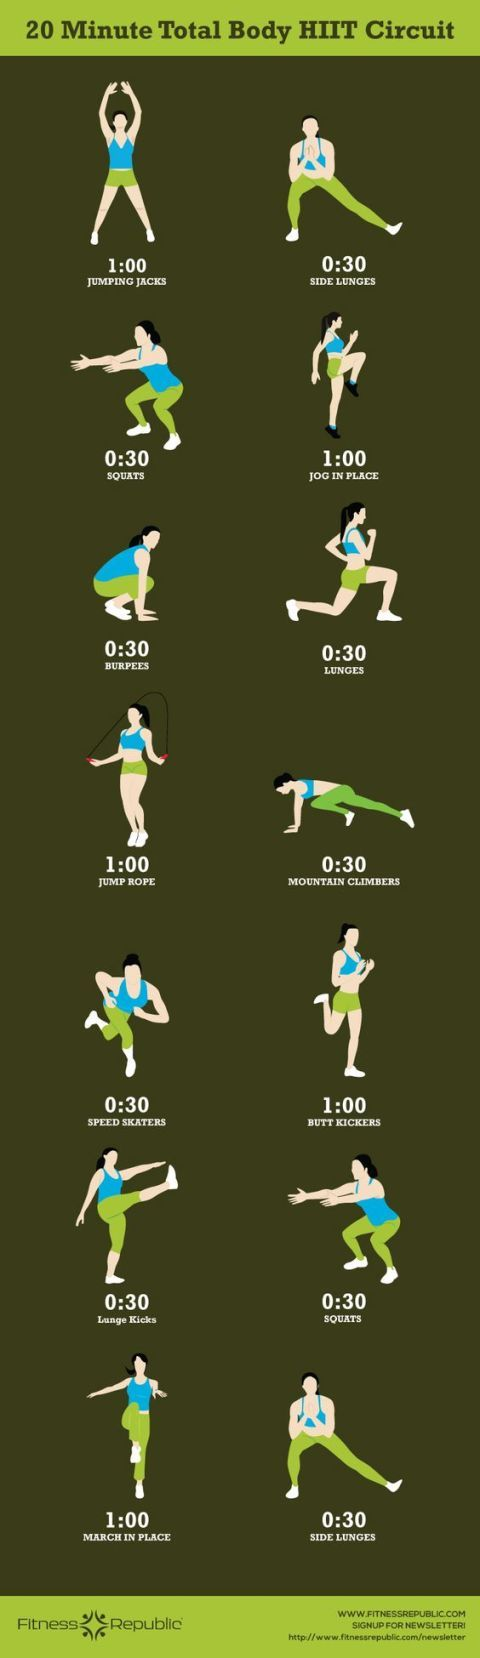 Total Body HIIT Workout Work every part of your body in 20 minutes with this HIIT workout. (We hope you like mountain climbers!)